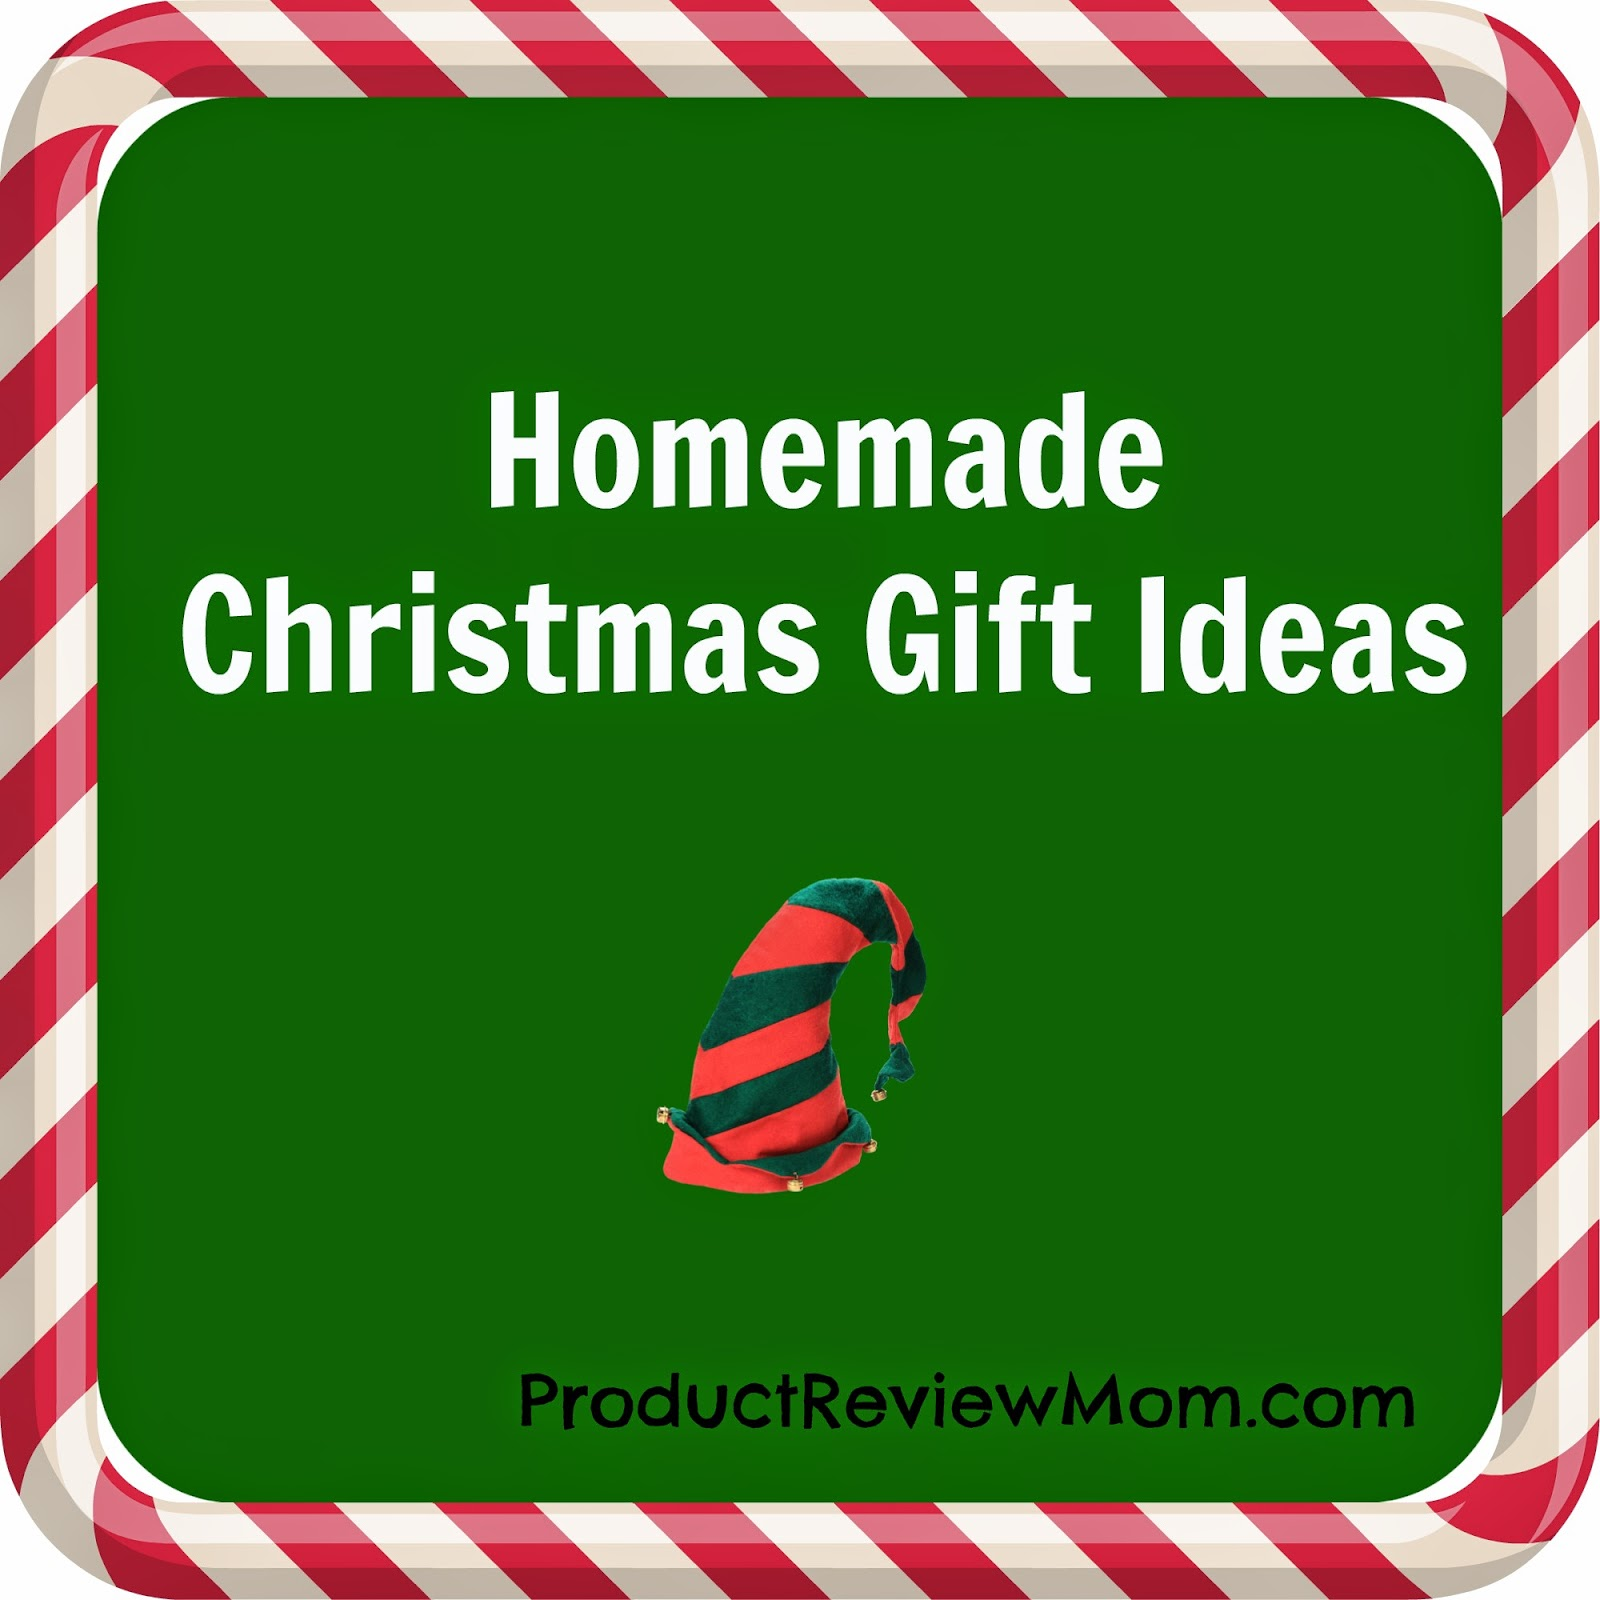 Homemade Christmas Gift Ideas #HolidayGiftGuide via www.productreviewmom.com